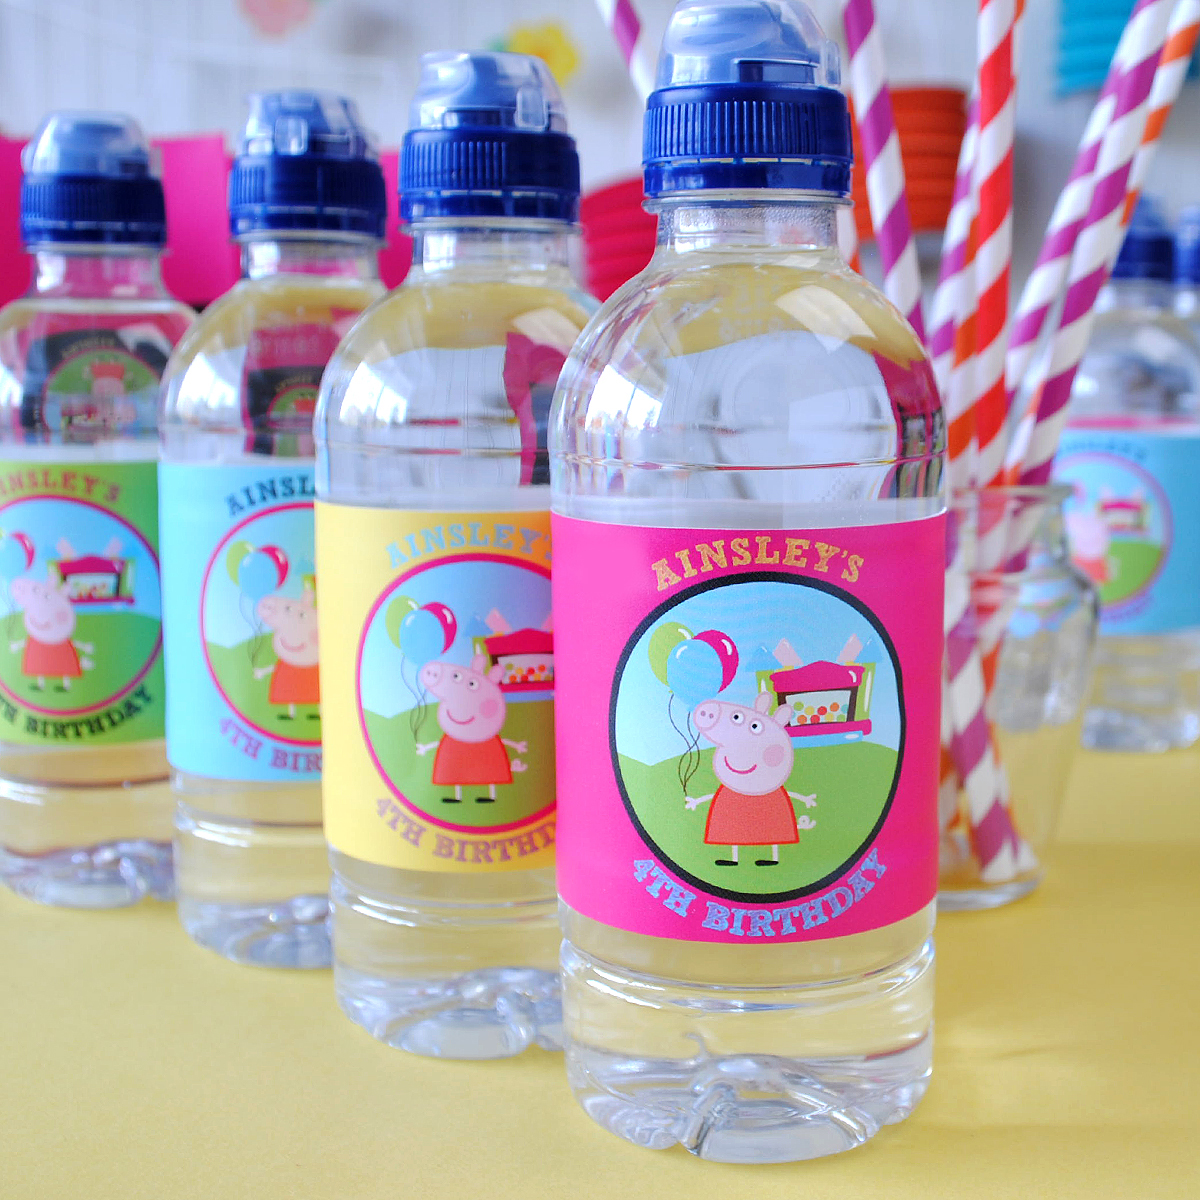 Peppa pig water bottle label. How to create a character theme birthday label like this.